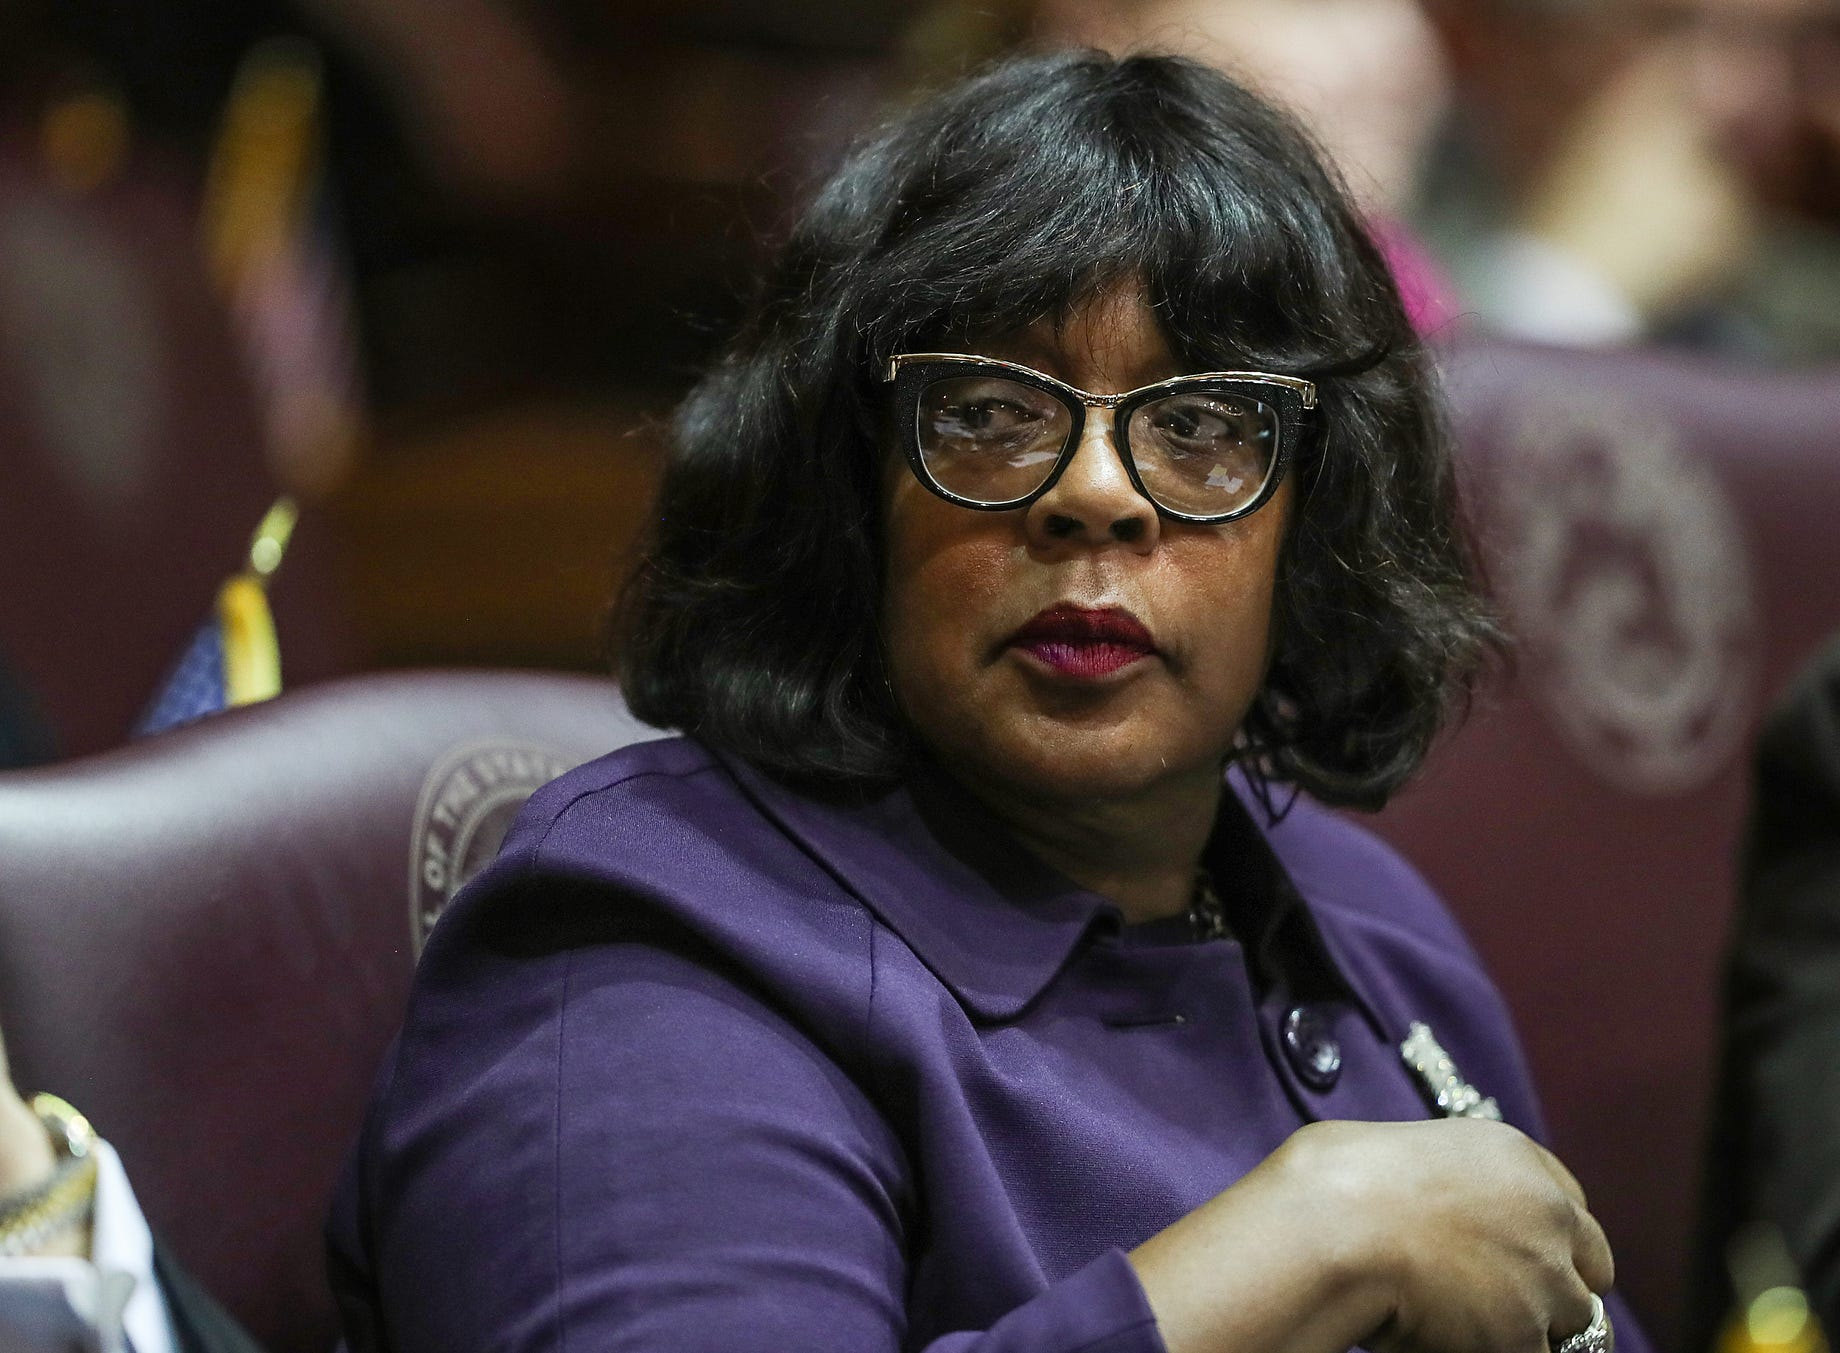 Rep. Carolyn Jackson seen on the starting day of legislative session at the Indiana Statehouse, Indianapolis, Thursday, Jan. 3, 2019.